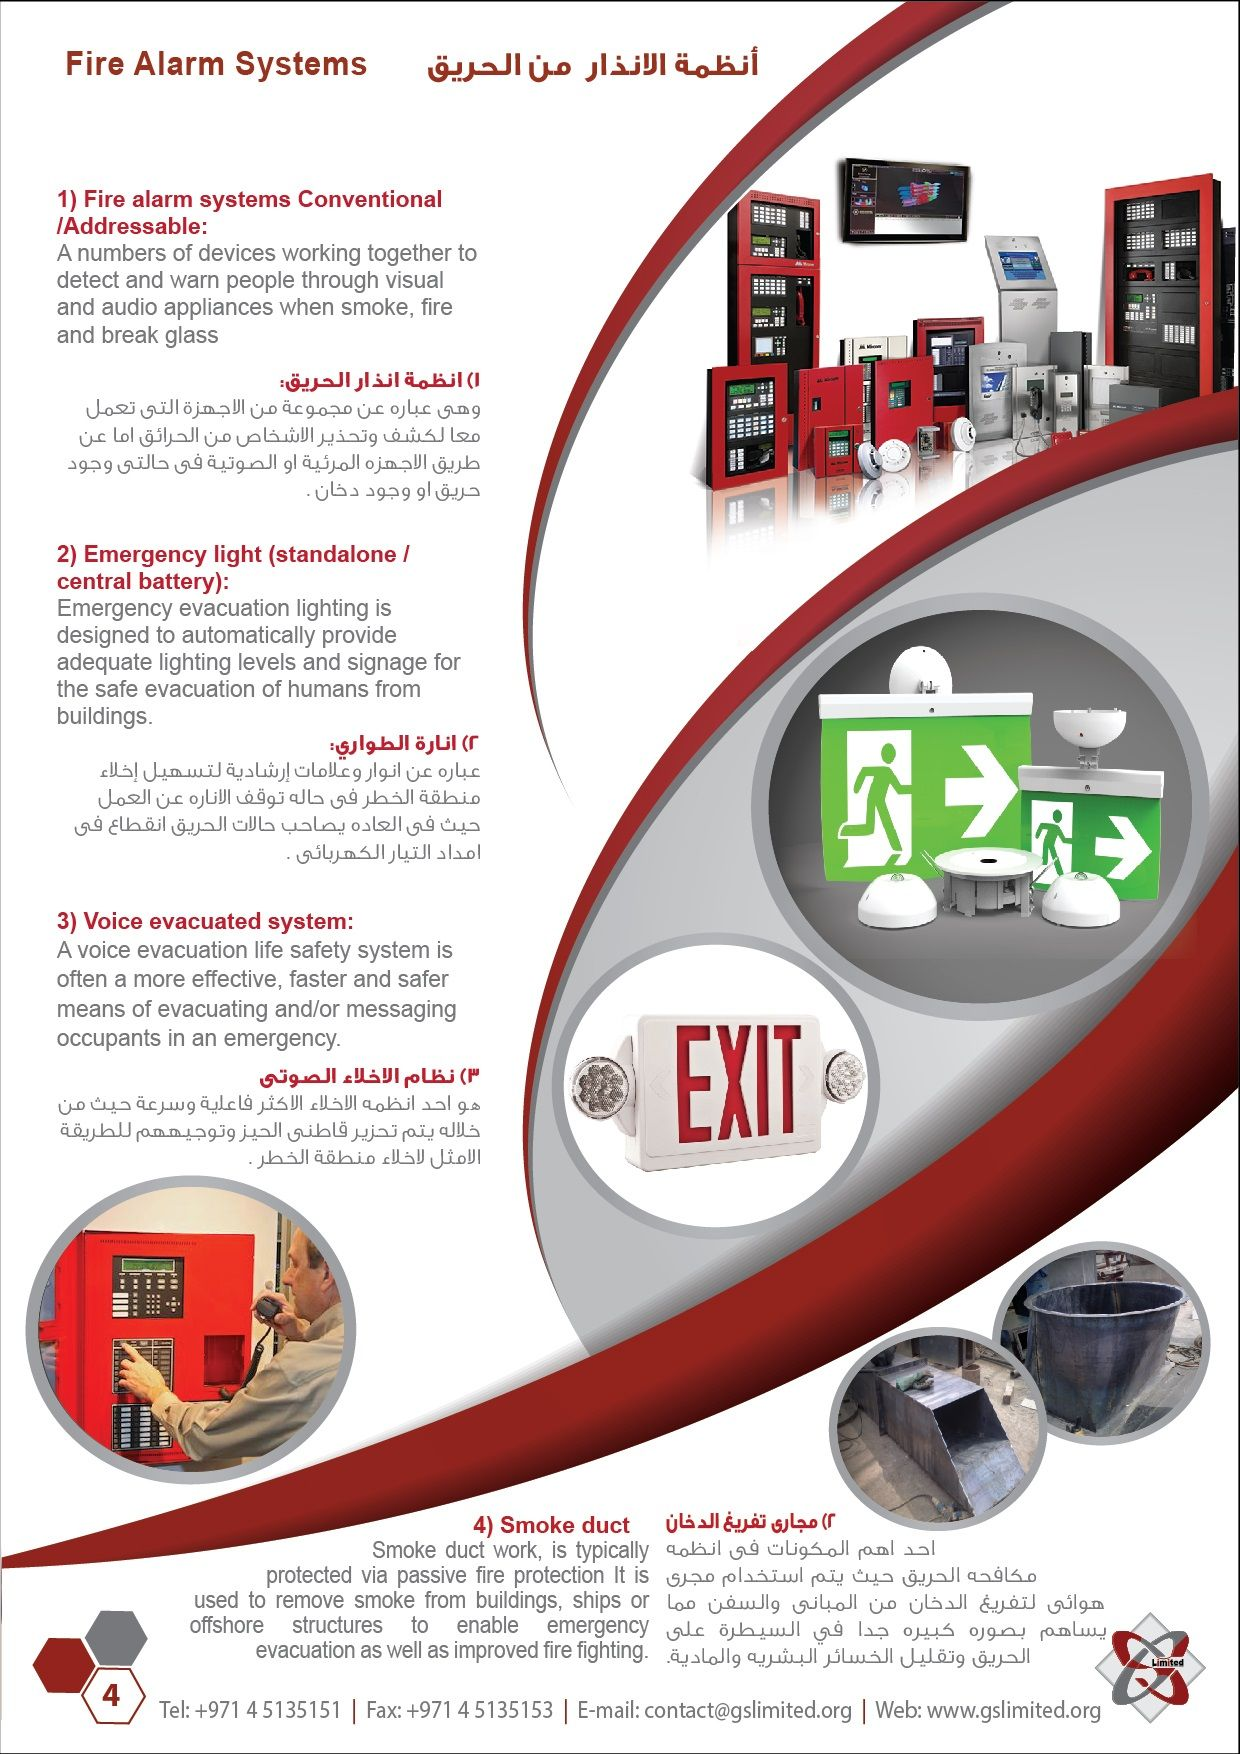 fire alarm systems golden shield company provides full solution in fire detection and firefighting including system [ 1240 x 1754 Pixel ]